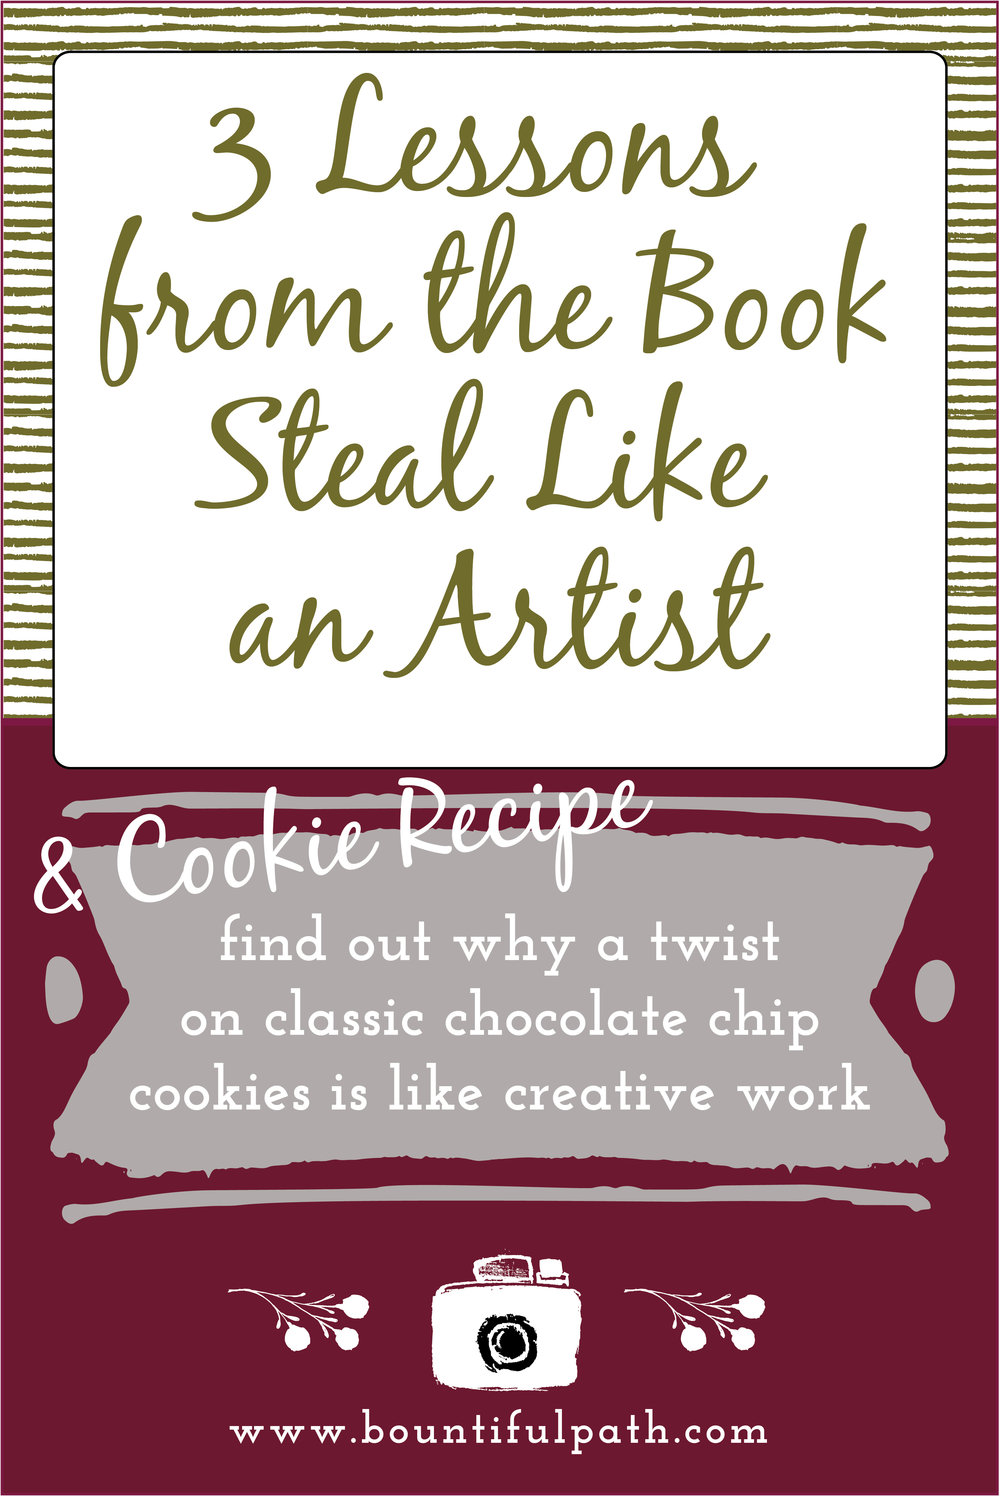 Learn how creative work is like making a twist on the classic chocolate chip cookie recipe and why there are no completely new ideas out there | Bountiful Path